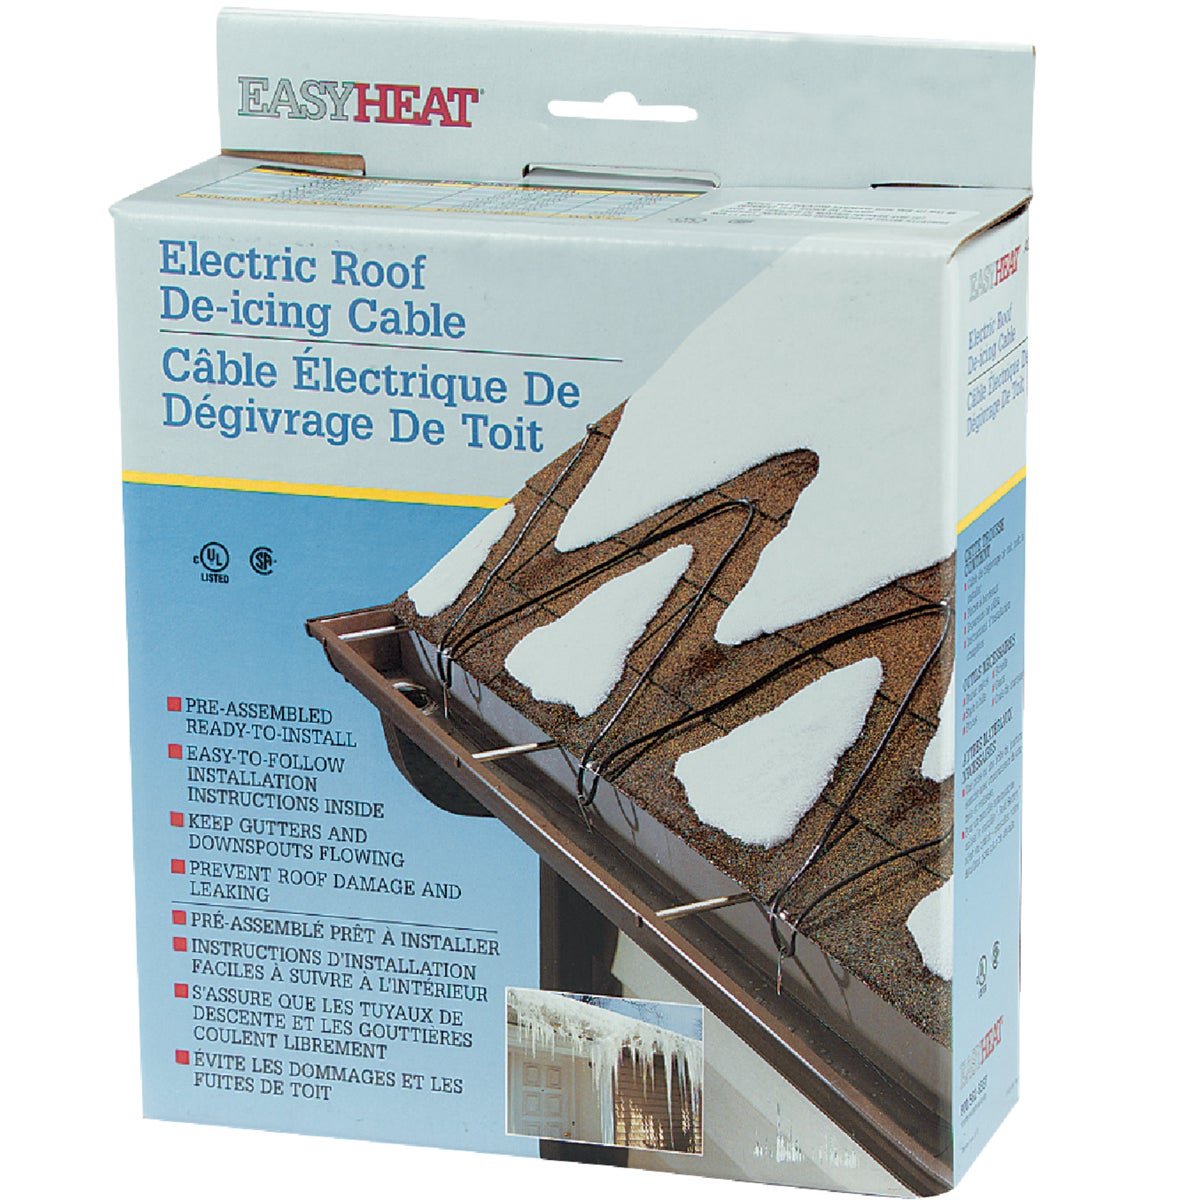 80' ROOF CABLE - ADKS400 by Easy Heat Inc